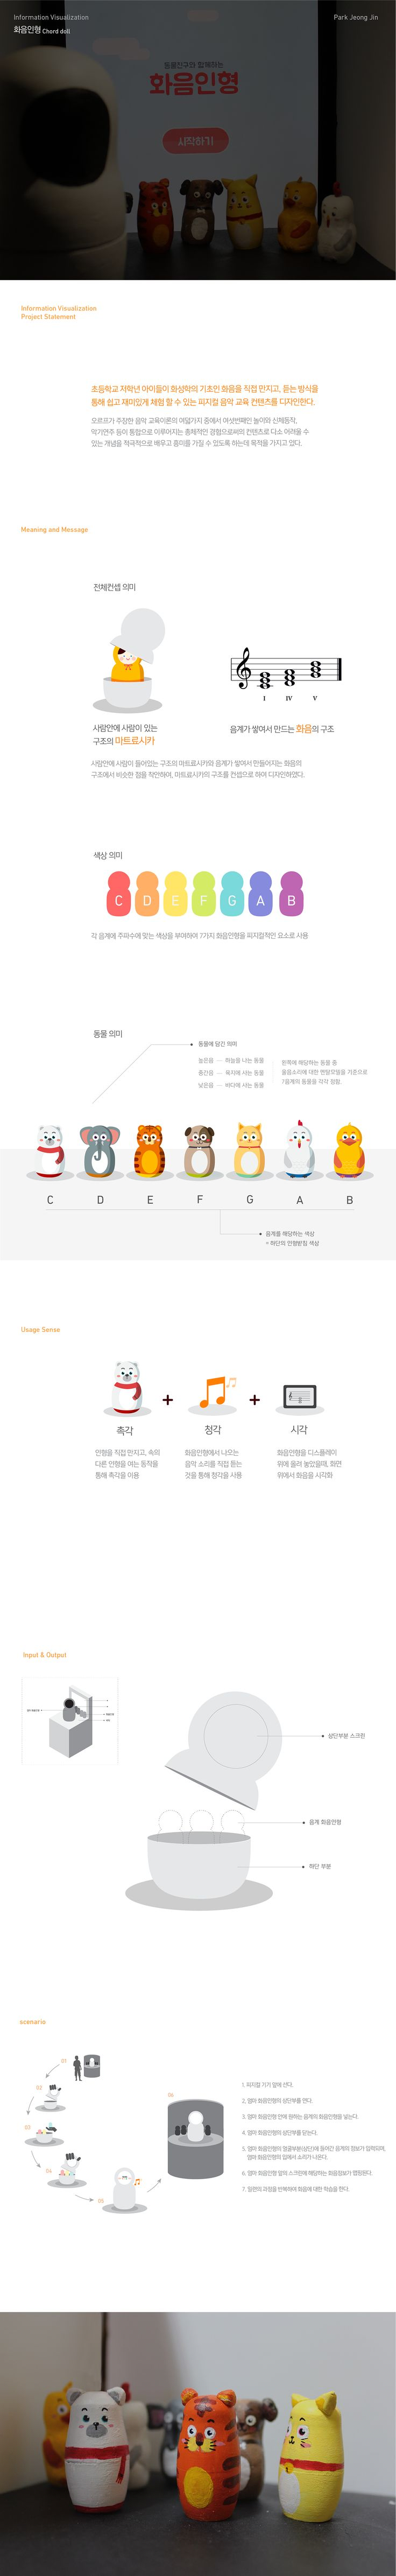 박정진│ Information Visualization 2015│ Major in Digital Media Design │#hicoda │hicoda.hongik.ac.kr